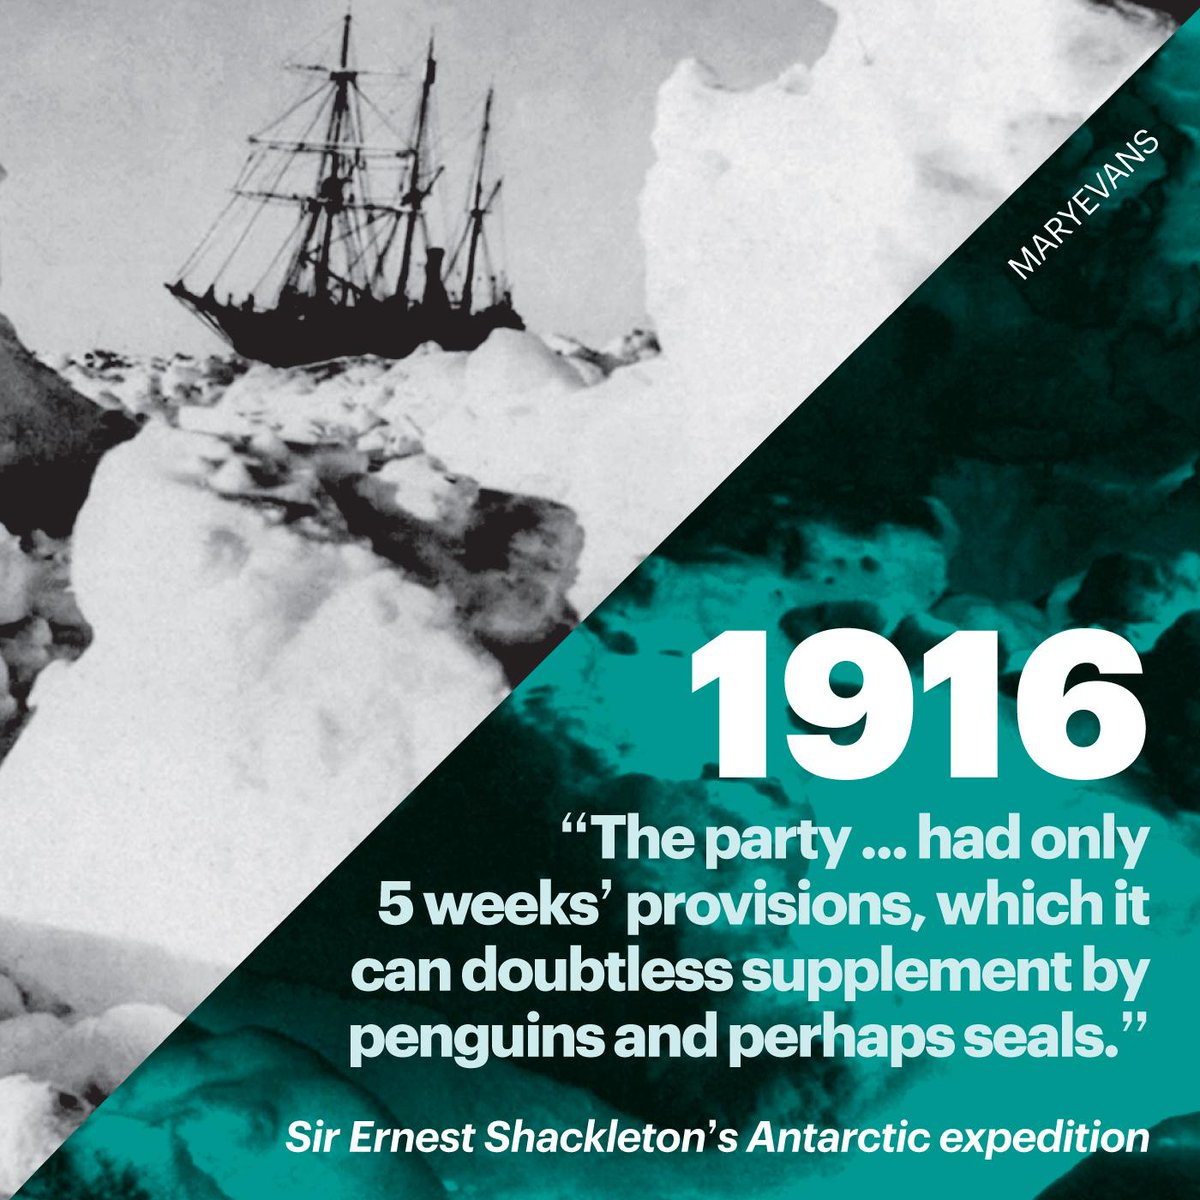 "An account in Nature of Sir Ernest Shackleton's Antarctic expedition describes it as ""... one of the most adventurous of Polar expeditions."" Read the full piece from 1916 here: https://go.nature.com/2ZrA0Rl  #Nature150"